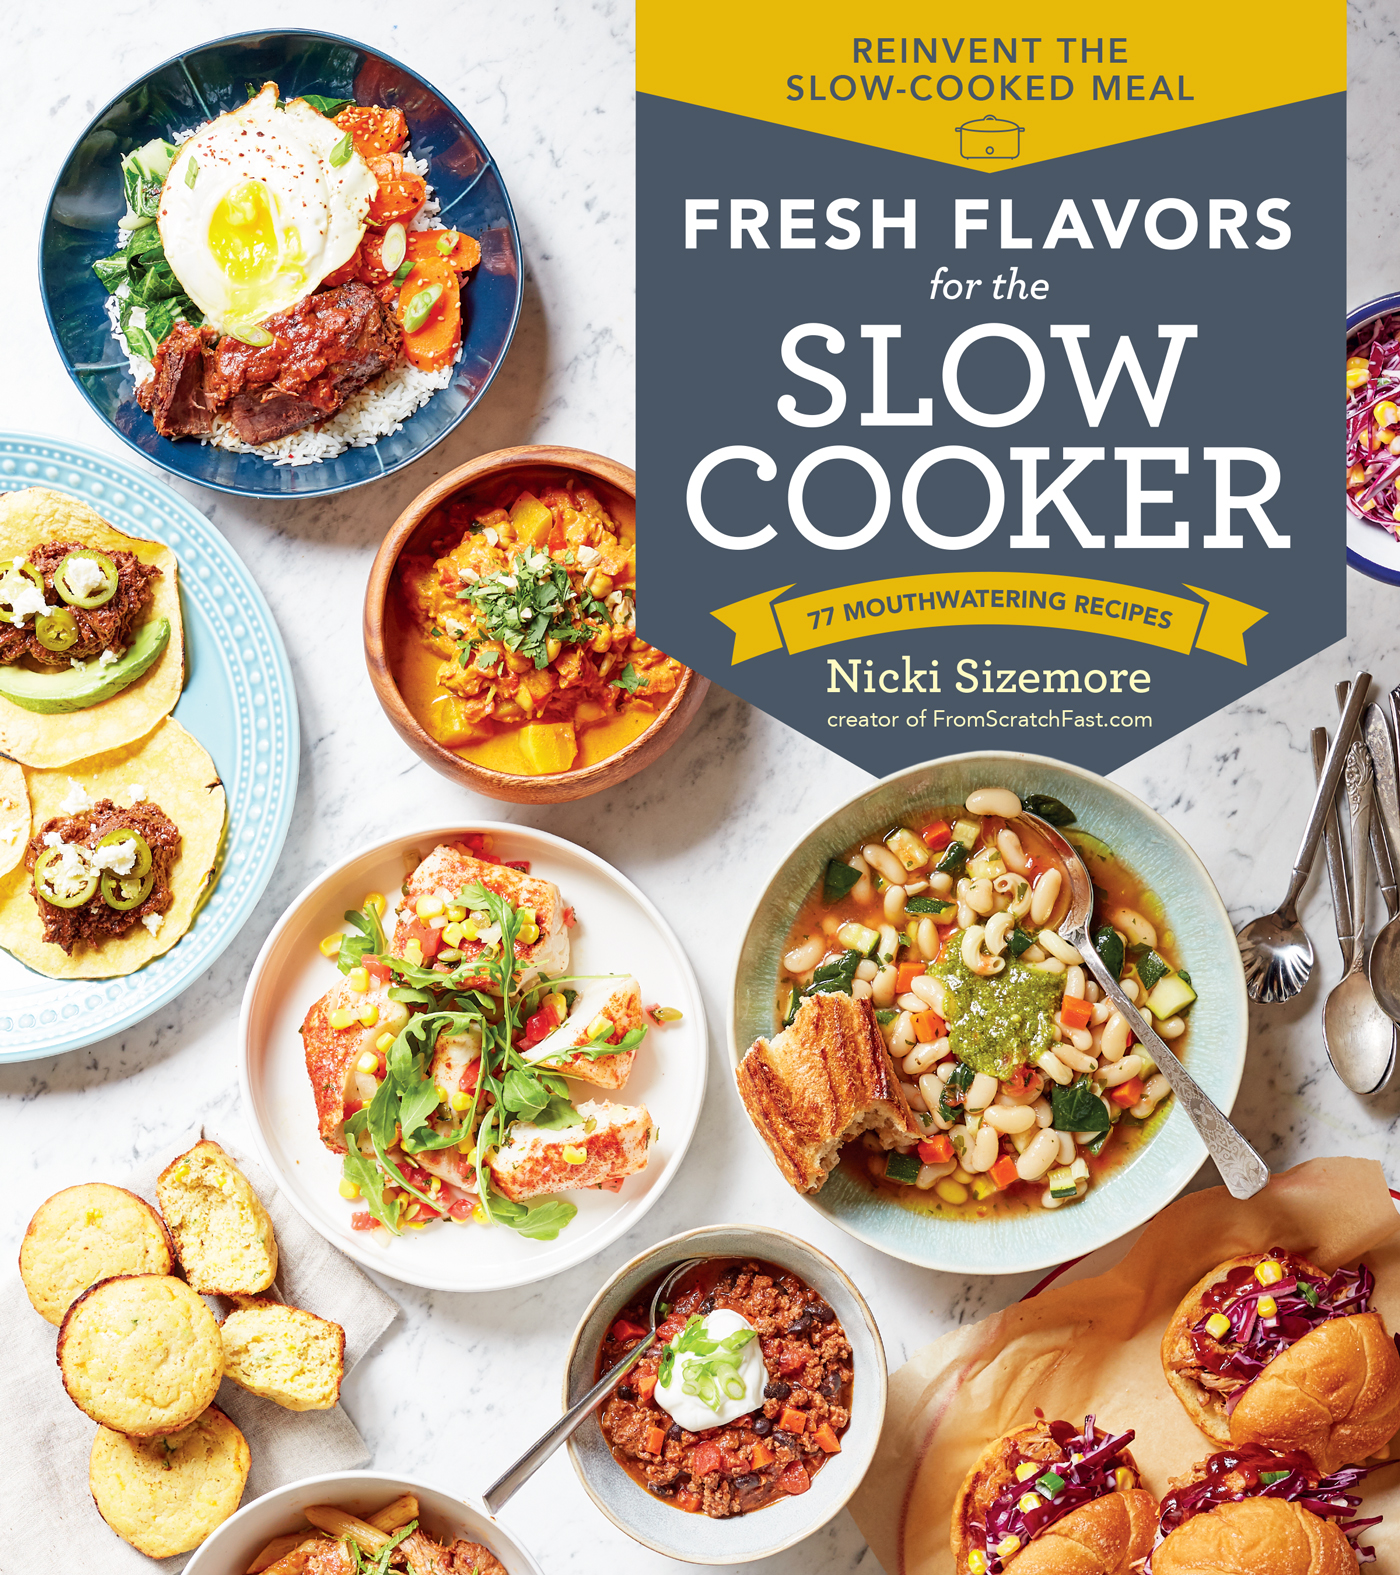 Fresh Flavors for the Slow Cooker Reinvent the Slow-Cooked Meal; 77 Mouthwatering Recipes - Nicki Sizemore